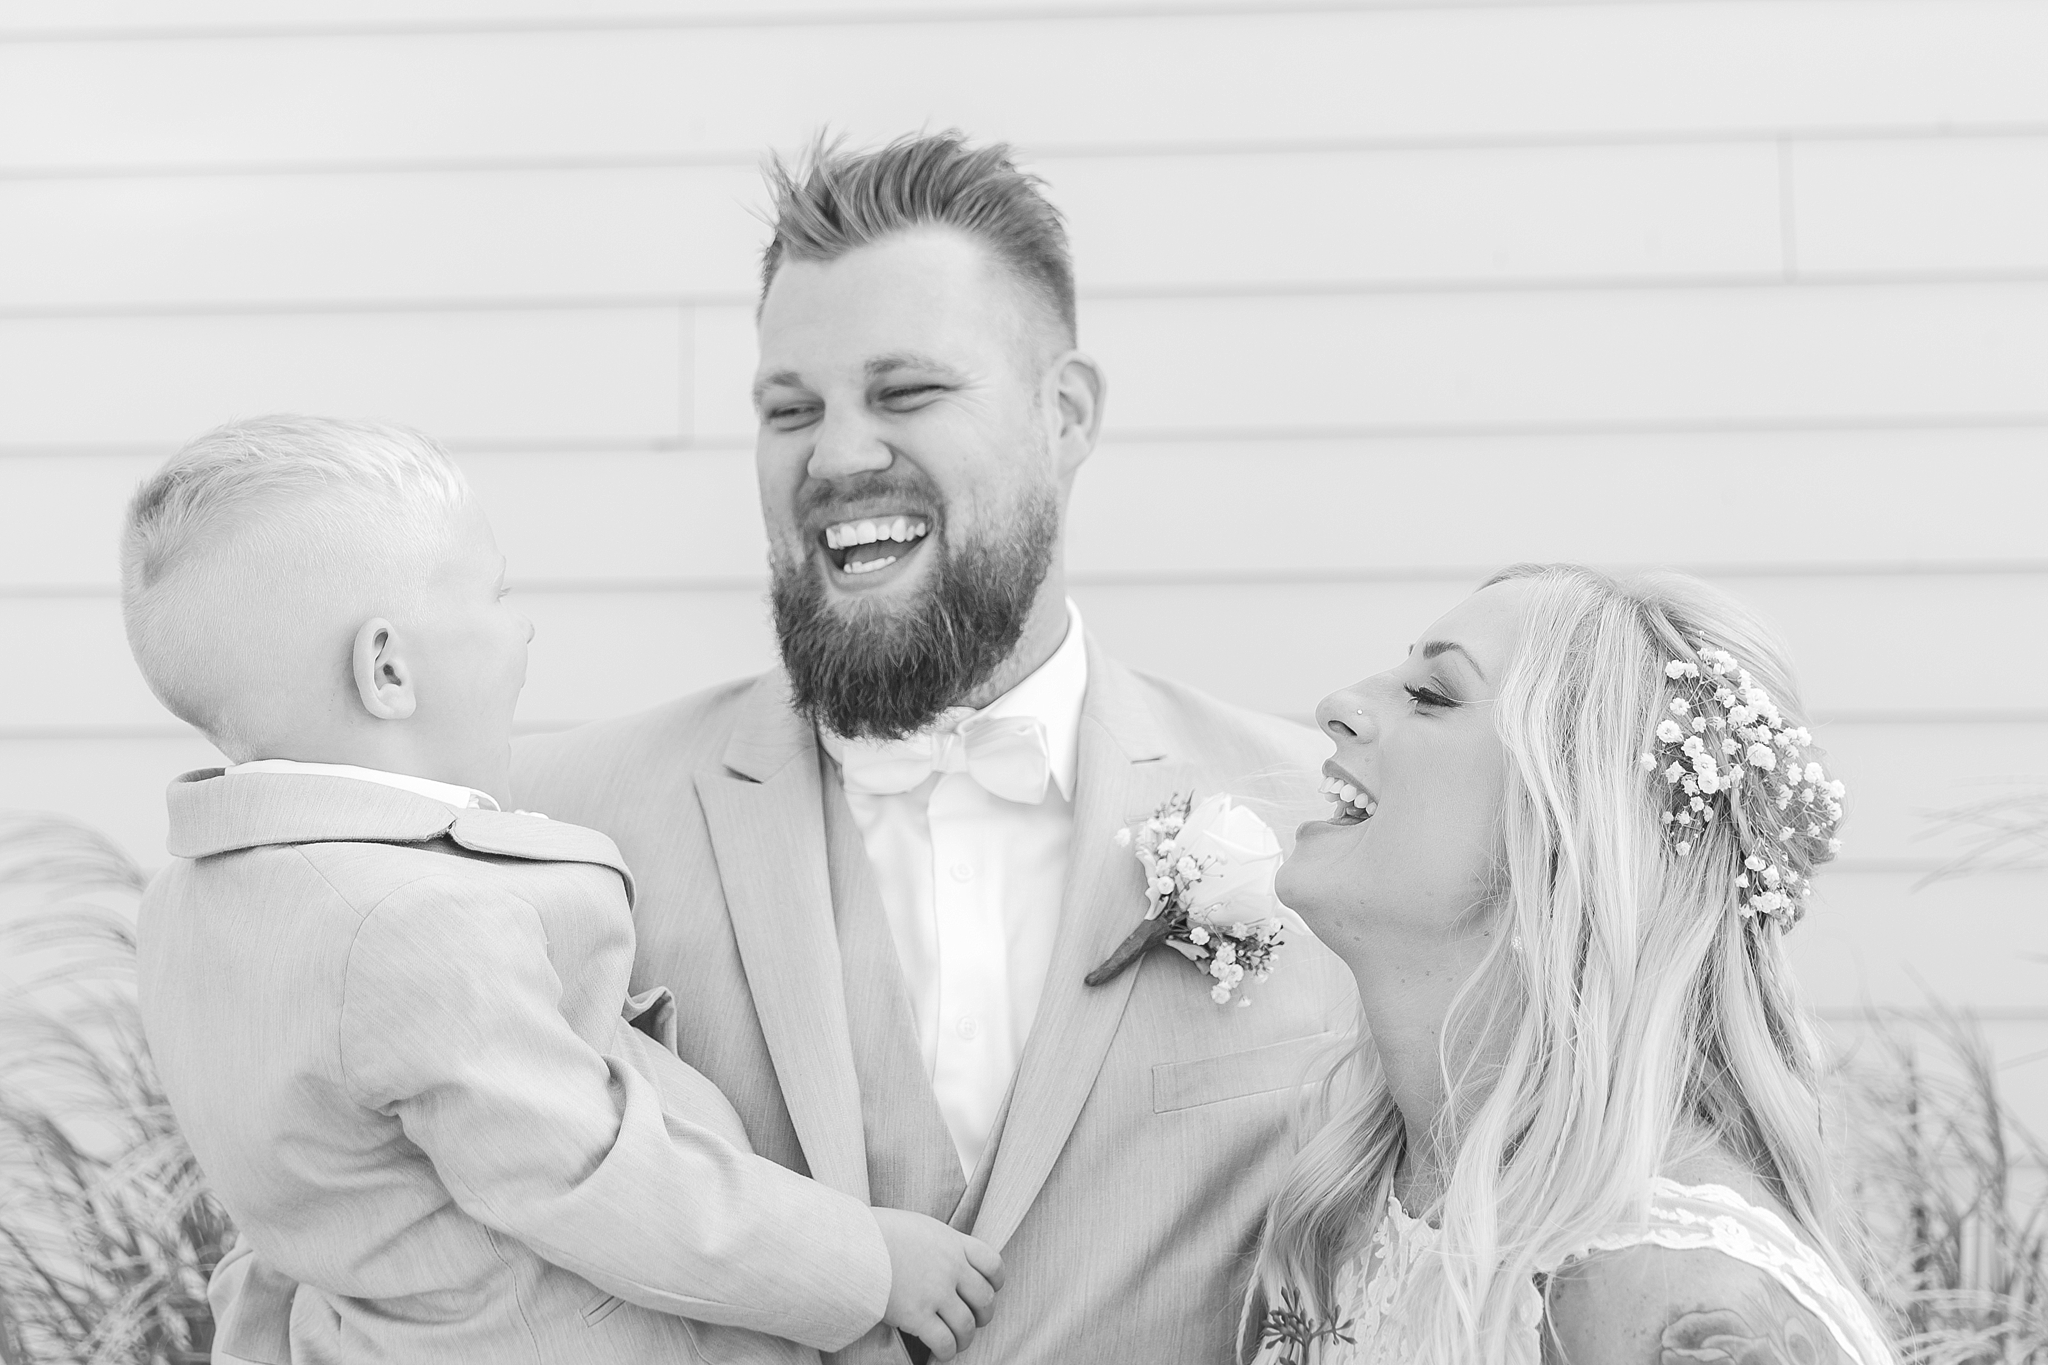 romantic-artful-candid-wedding-photos-in-detroit-lansing-ann-arbor-northern-michigan-and-chicago-by-courtney-carolyn-photography_0069.jpg